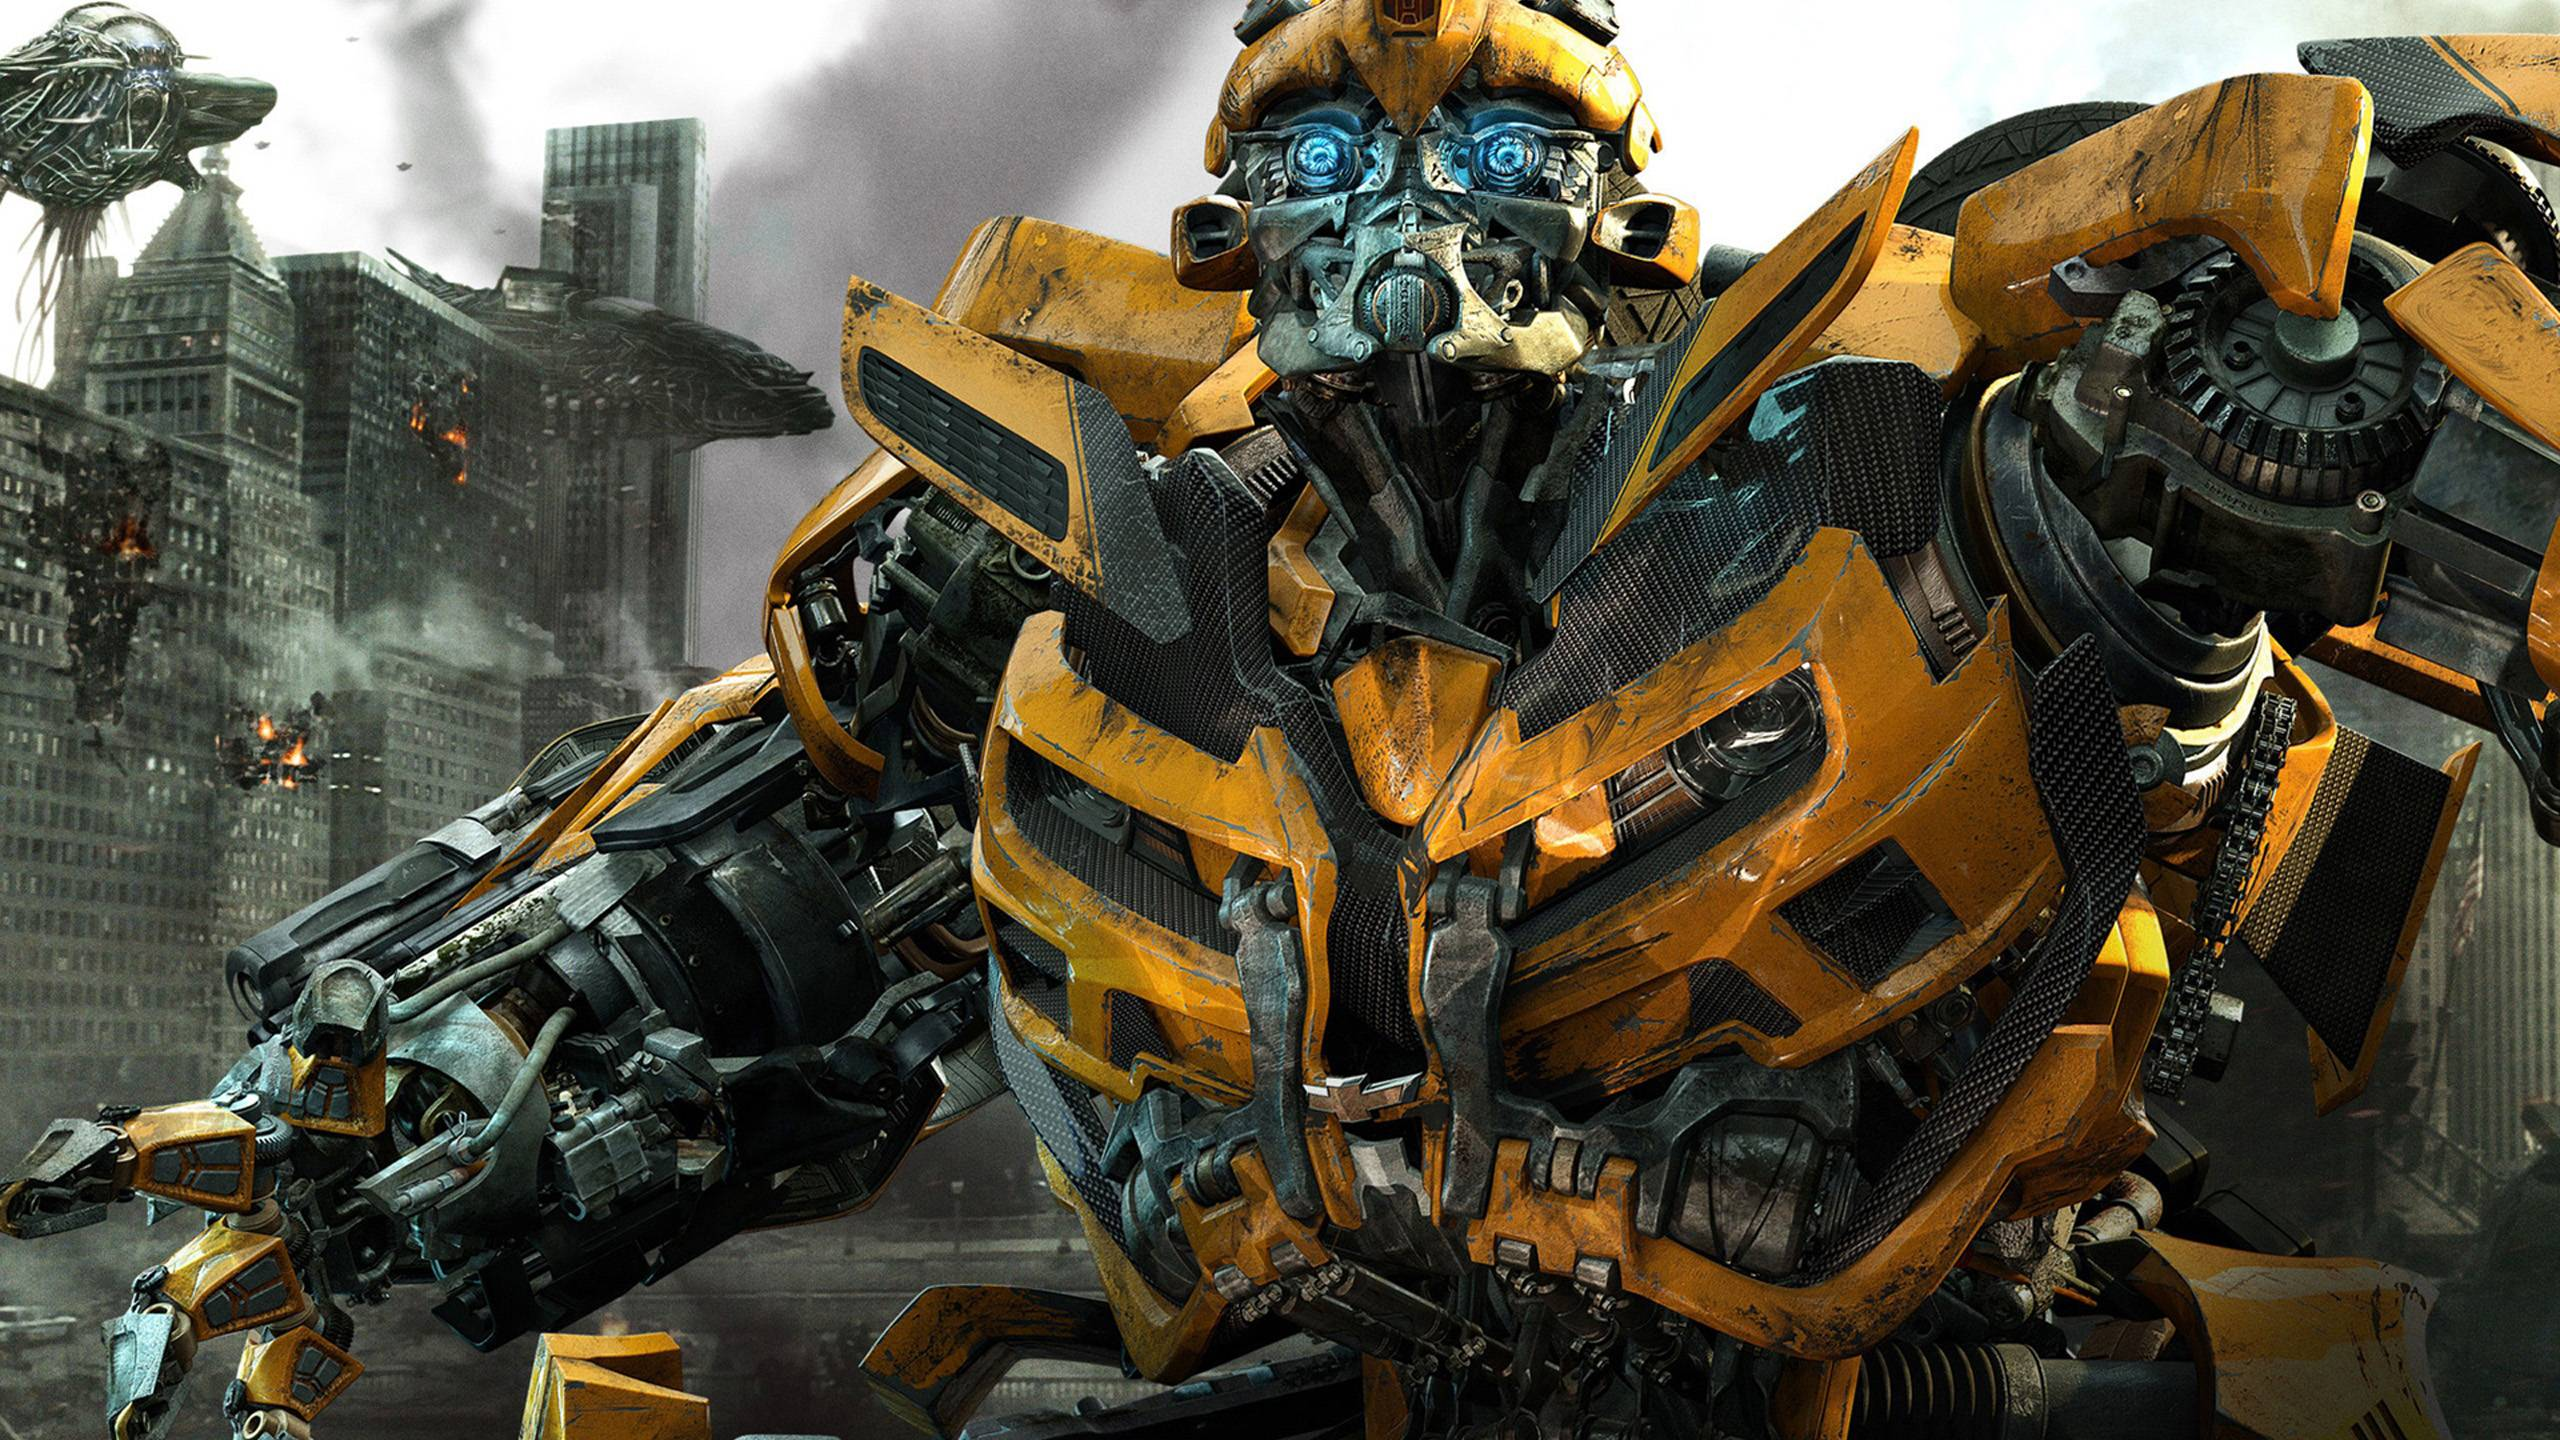 Transformers hd wallpapers wallpaper cave - Wallpapers transformers 4 ...